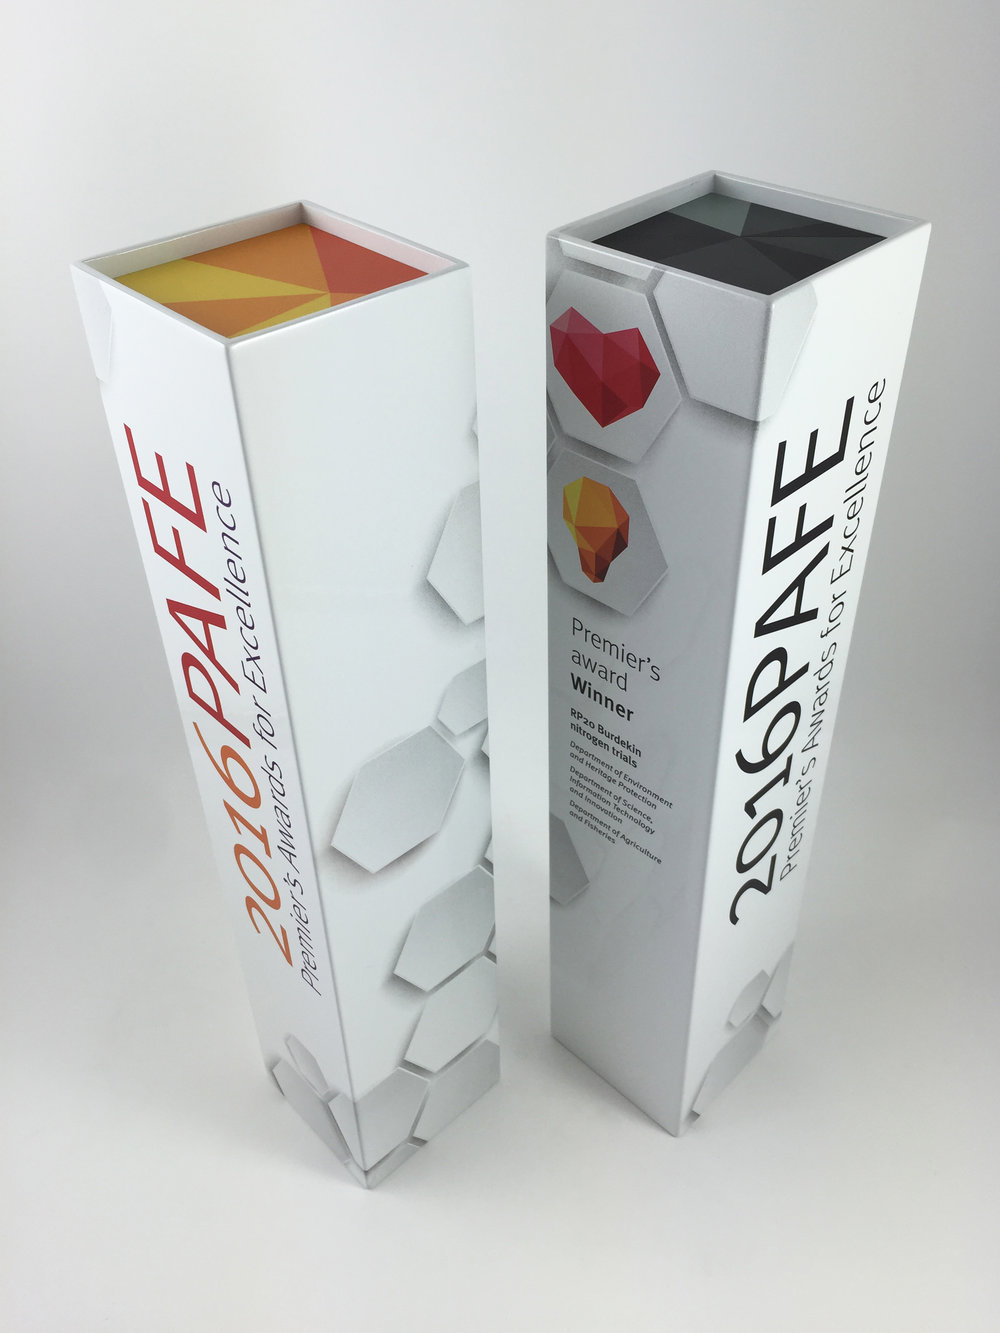 pafe-aluminium-graphic-print-awards-trophy-03.jpg